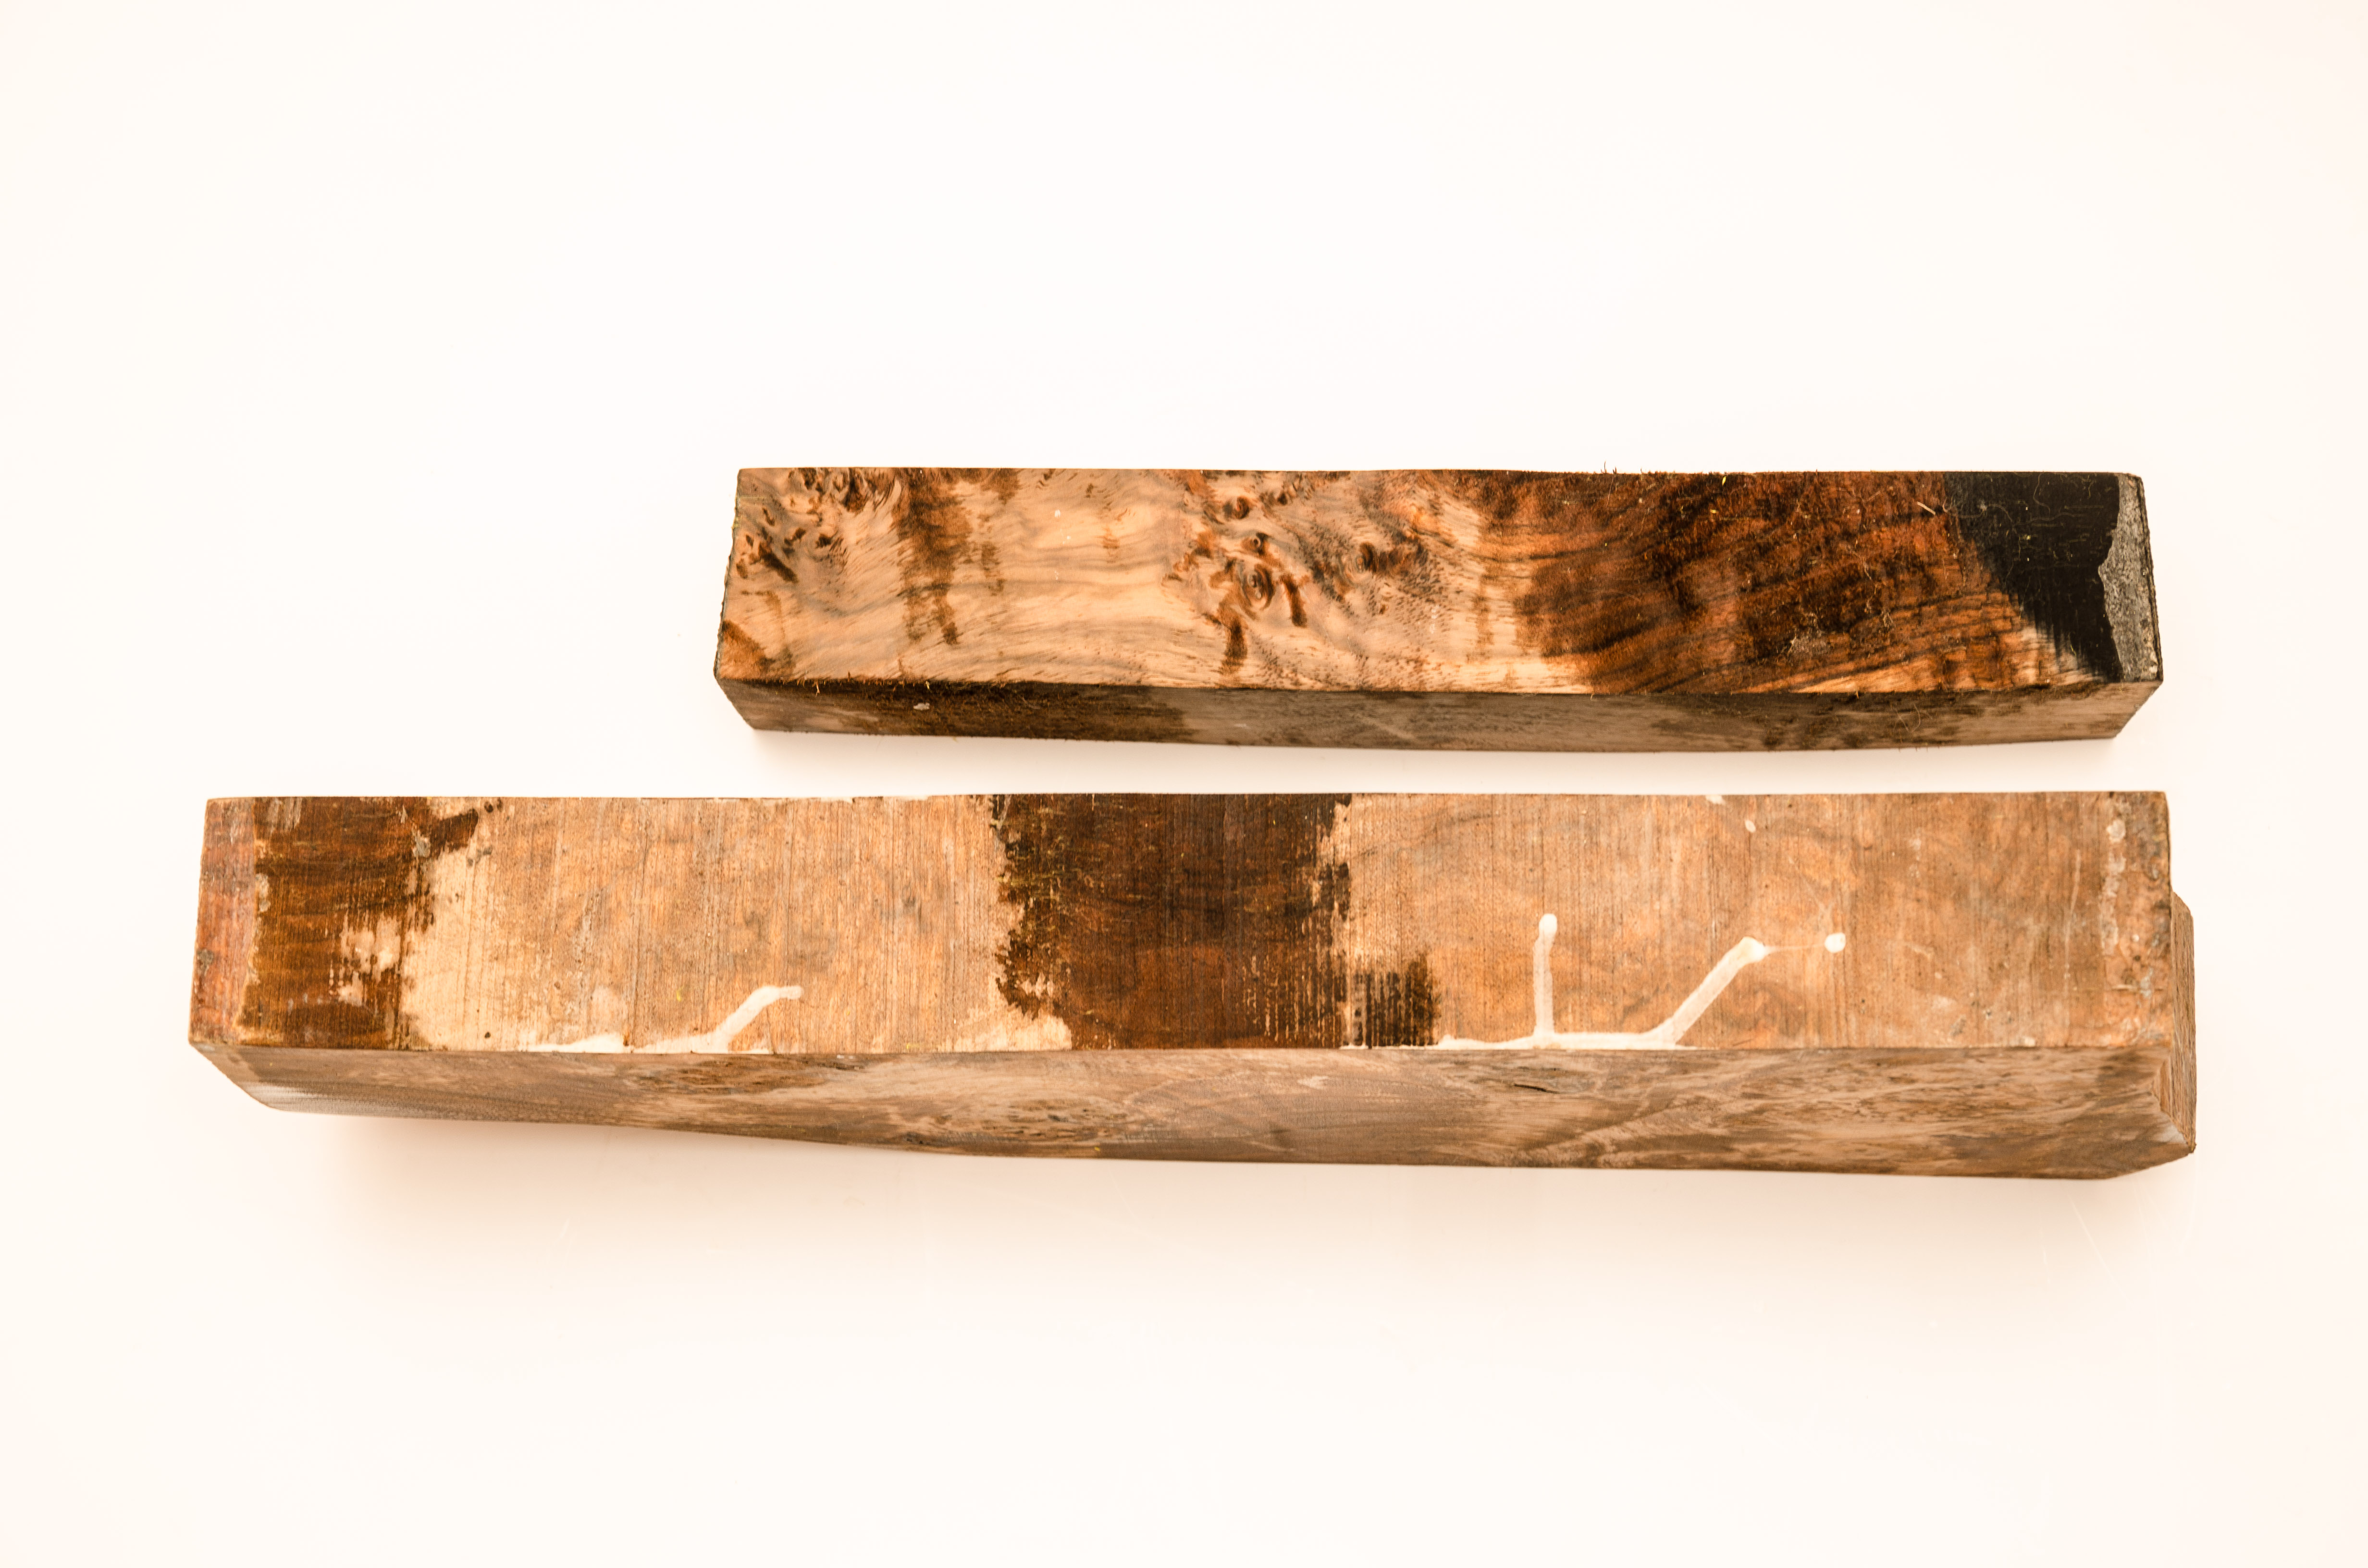 walnut_stock_blanks_for_guns_and_rifles-0331